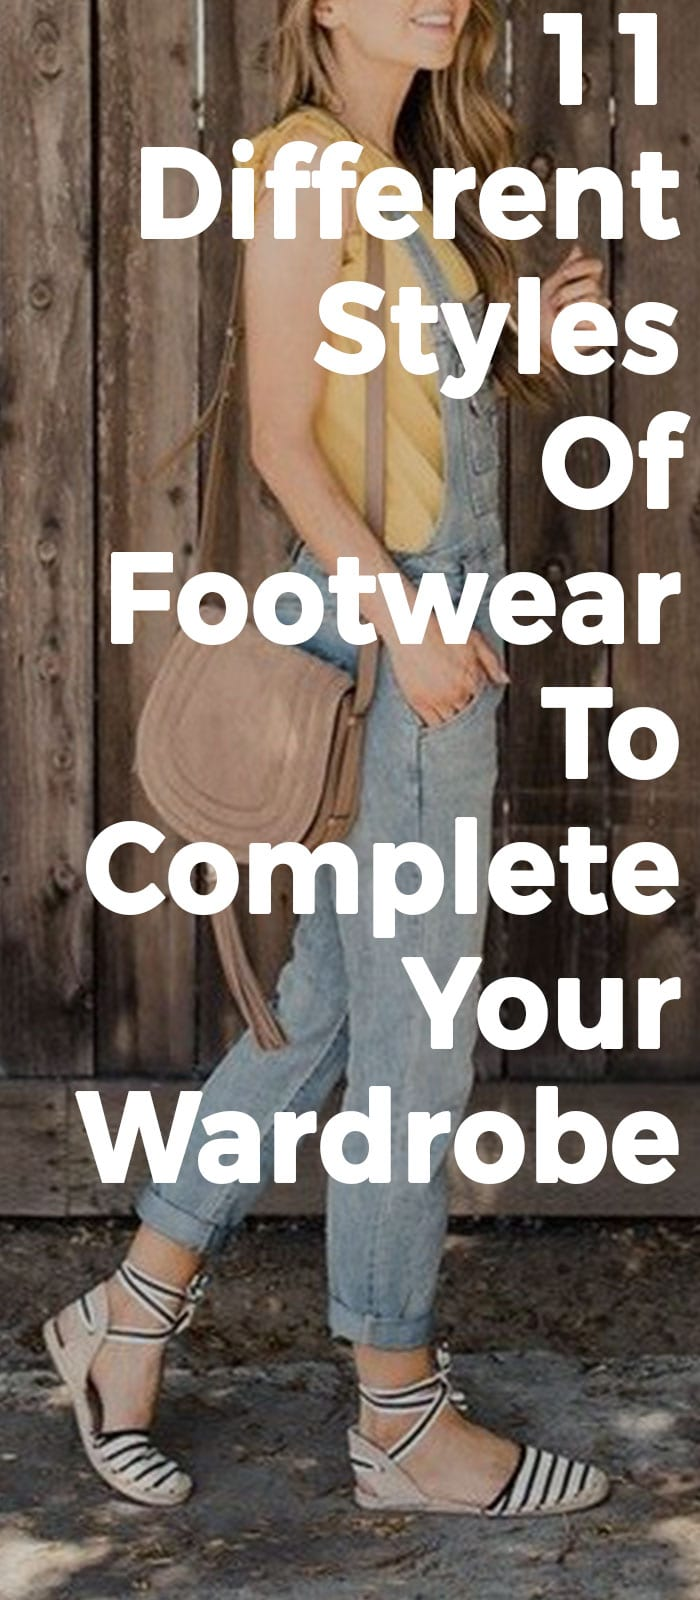 11 Different Styles Of Footwear To Complete Your Closet